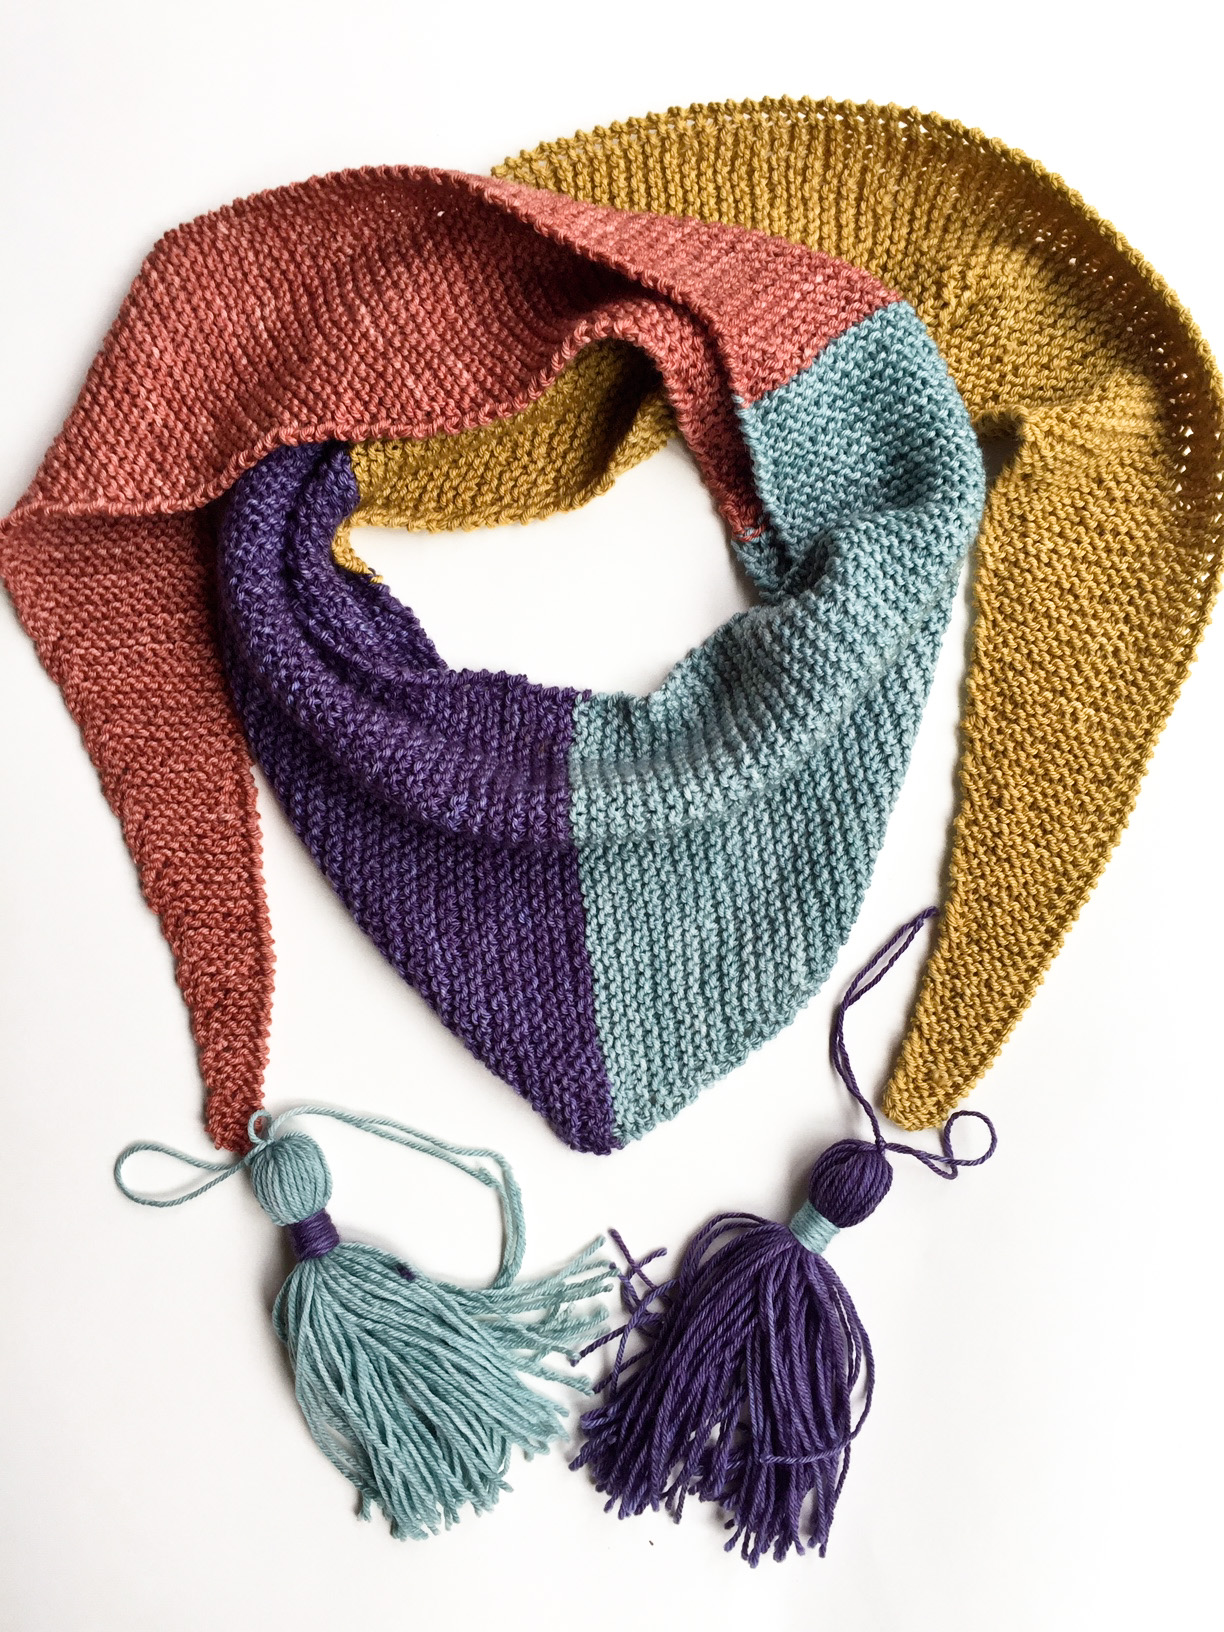 Baktus Scarf hand knit in Cowgirlbues wool Mustard, Aubergine, Celadon, Terracotta with tassels